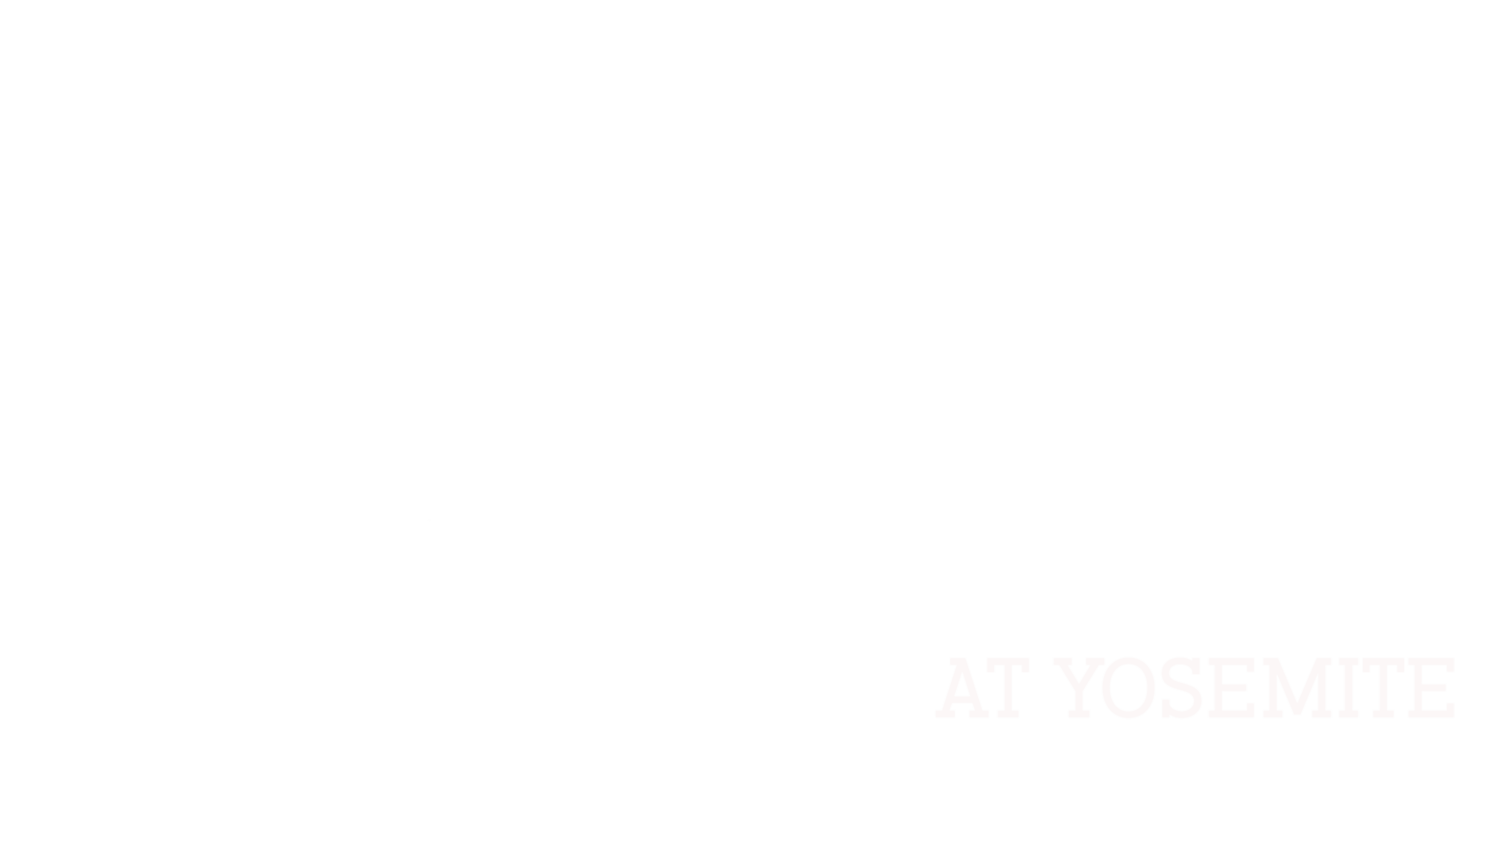 The Bracebridge Dinner at Yosemite